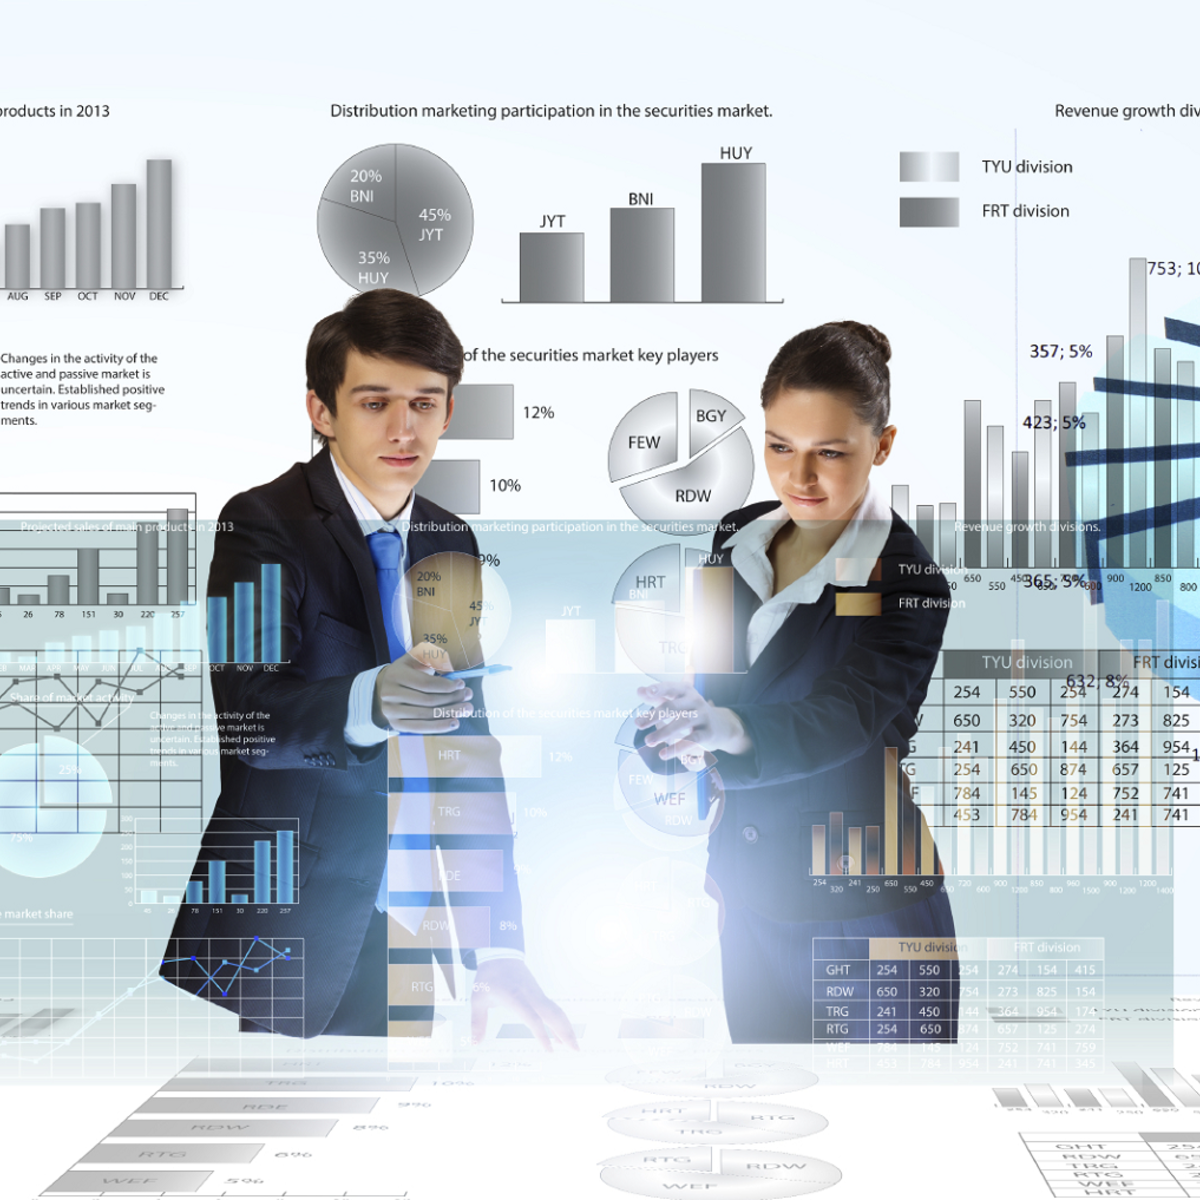 Foundations of strategic business analytics course image